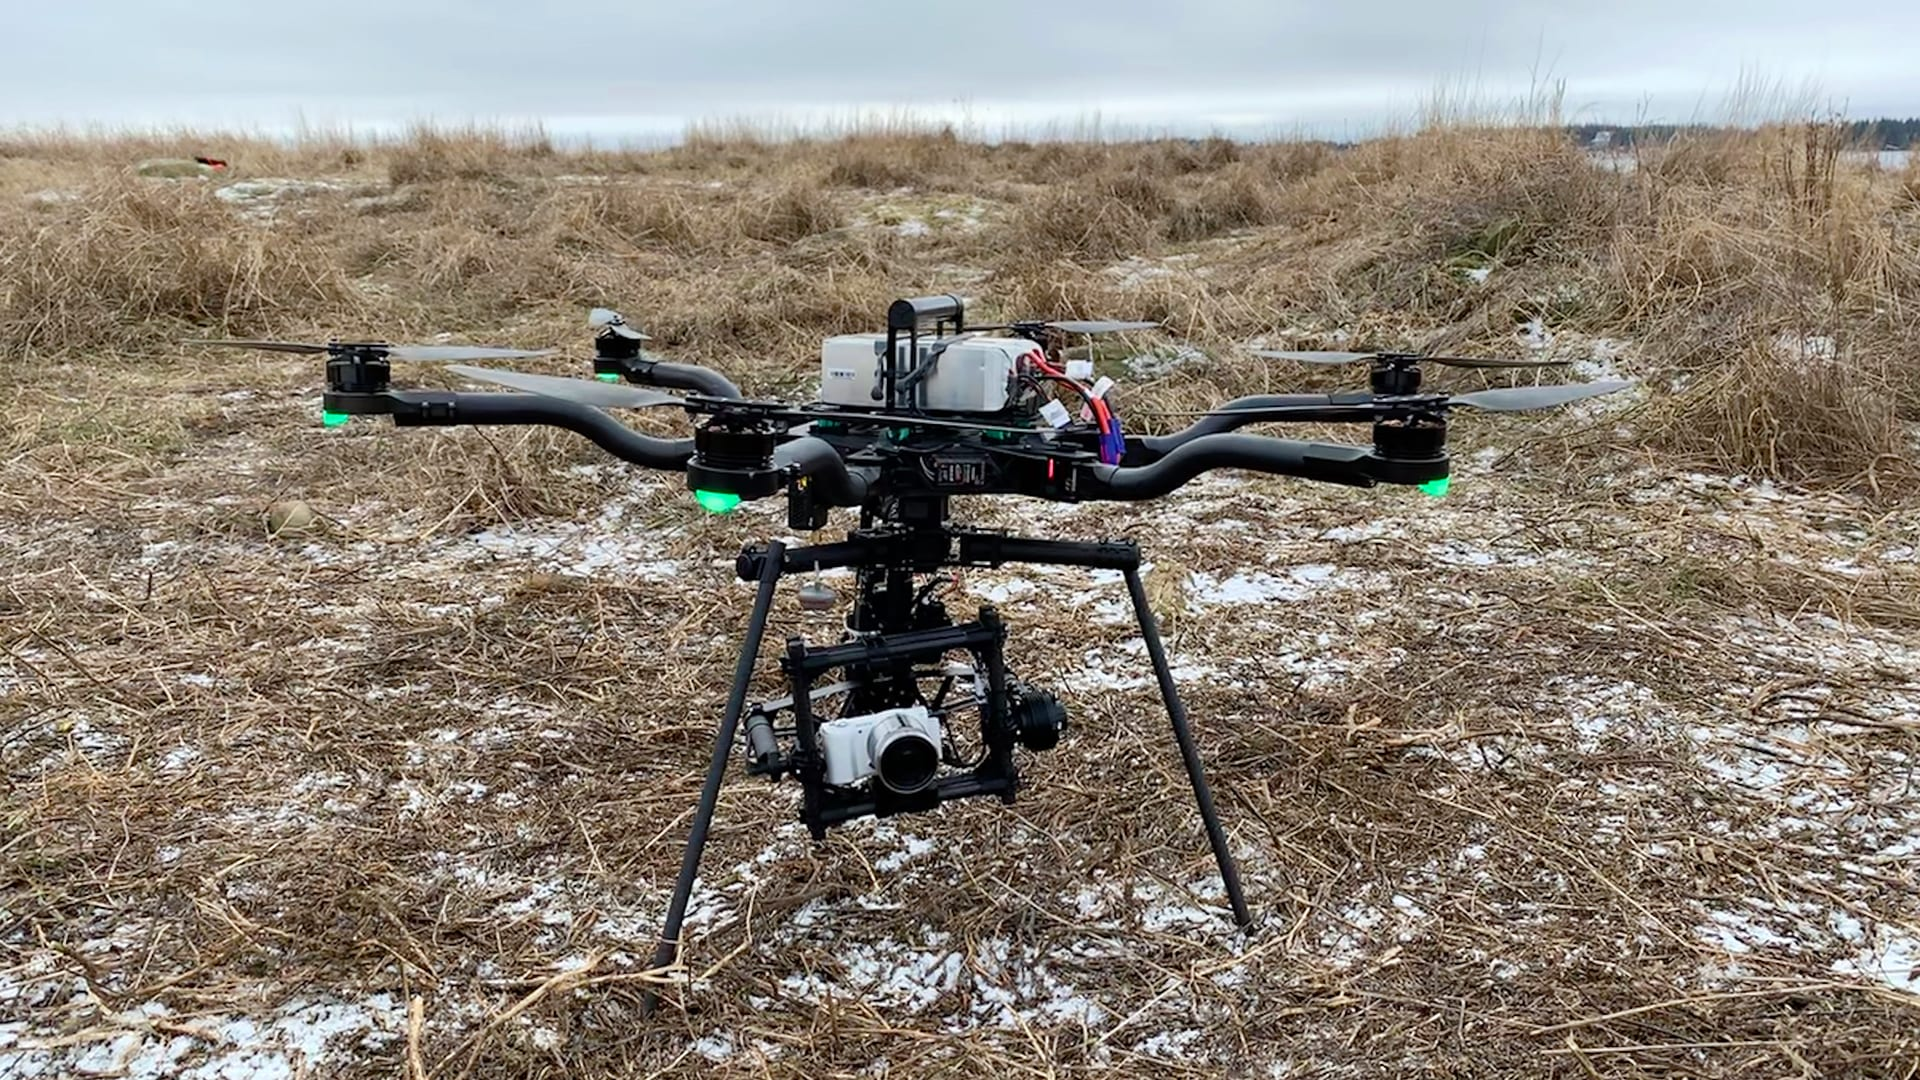 A hexacopter-style drone with a three-foot wingspan provided Shero with aerial photographs of the mum-and-pup seal pairs. Photo by Michelle Shero